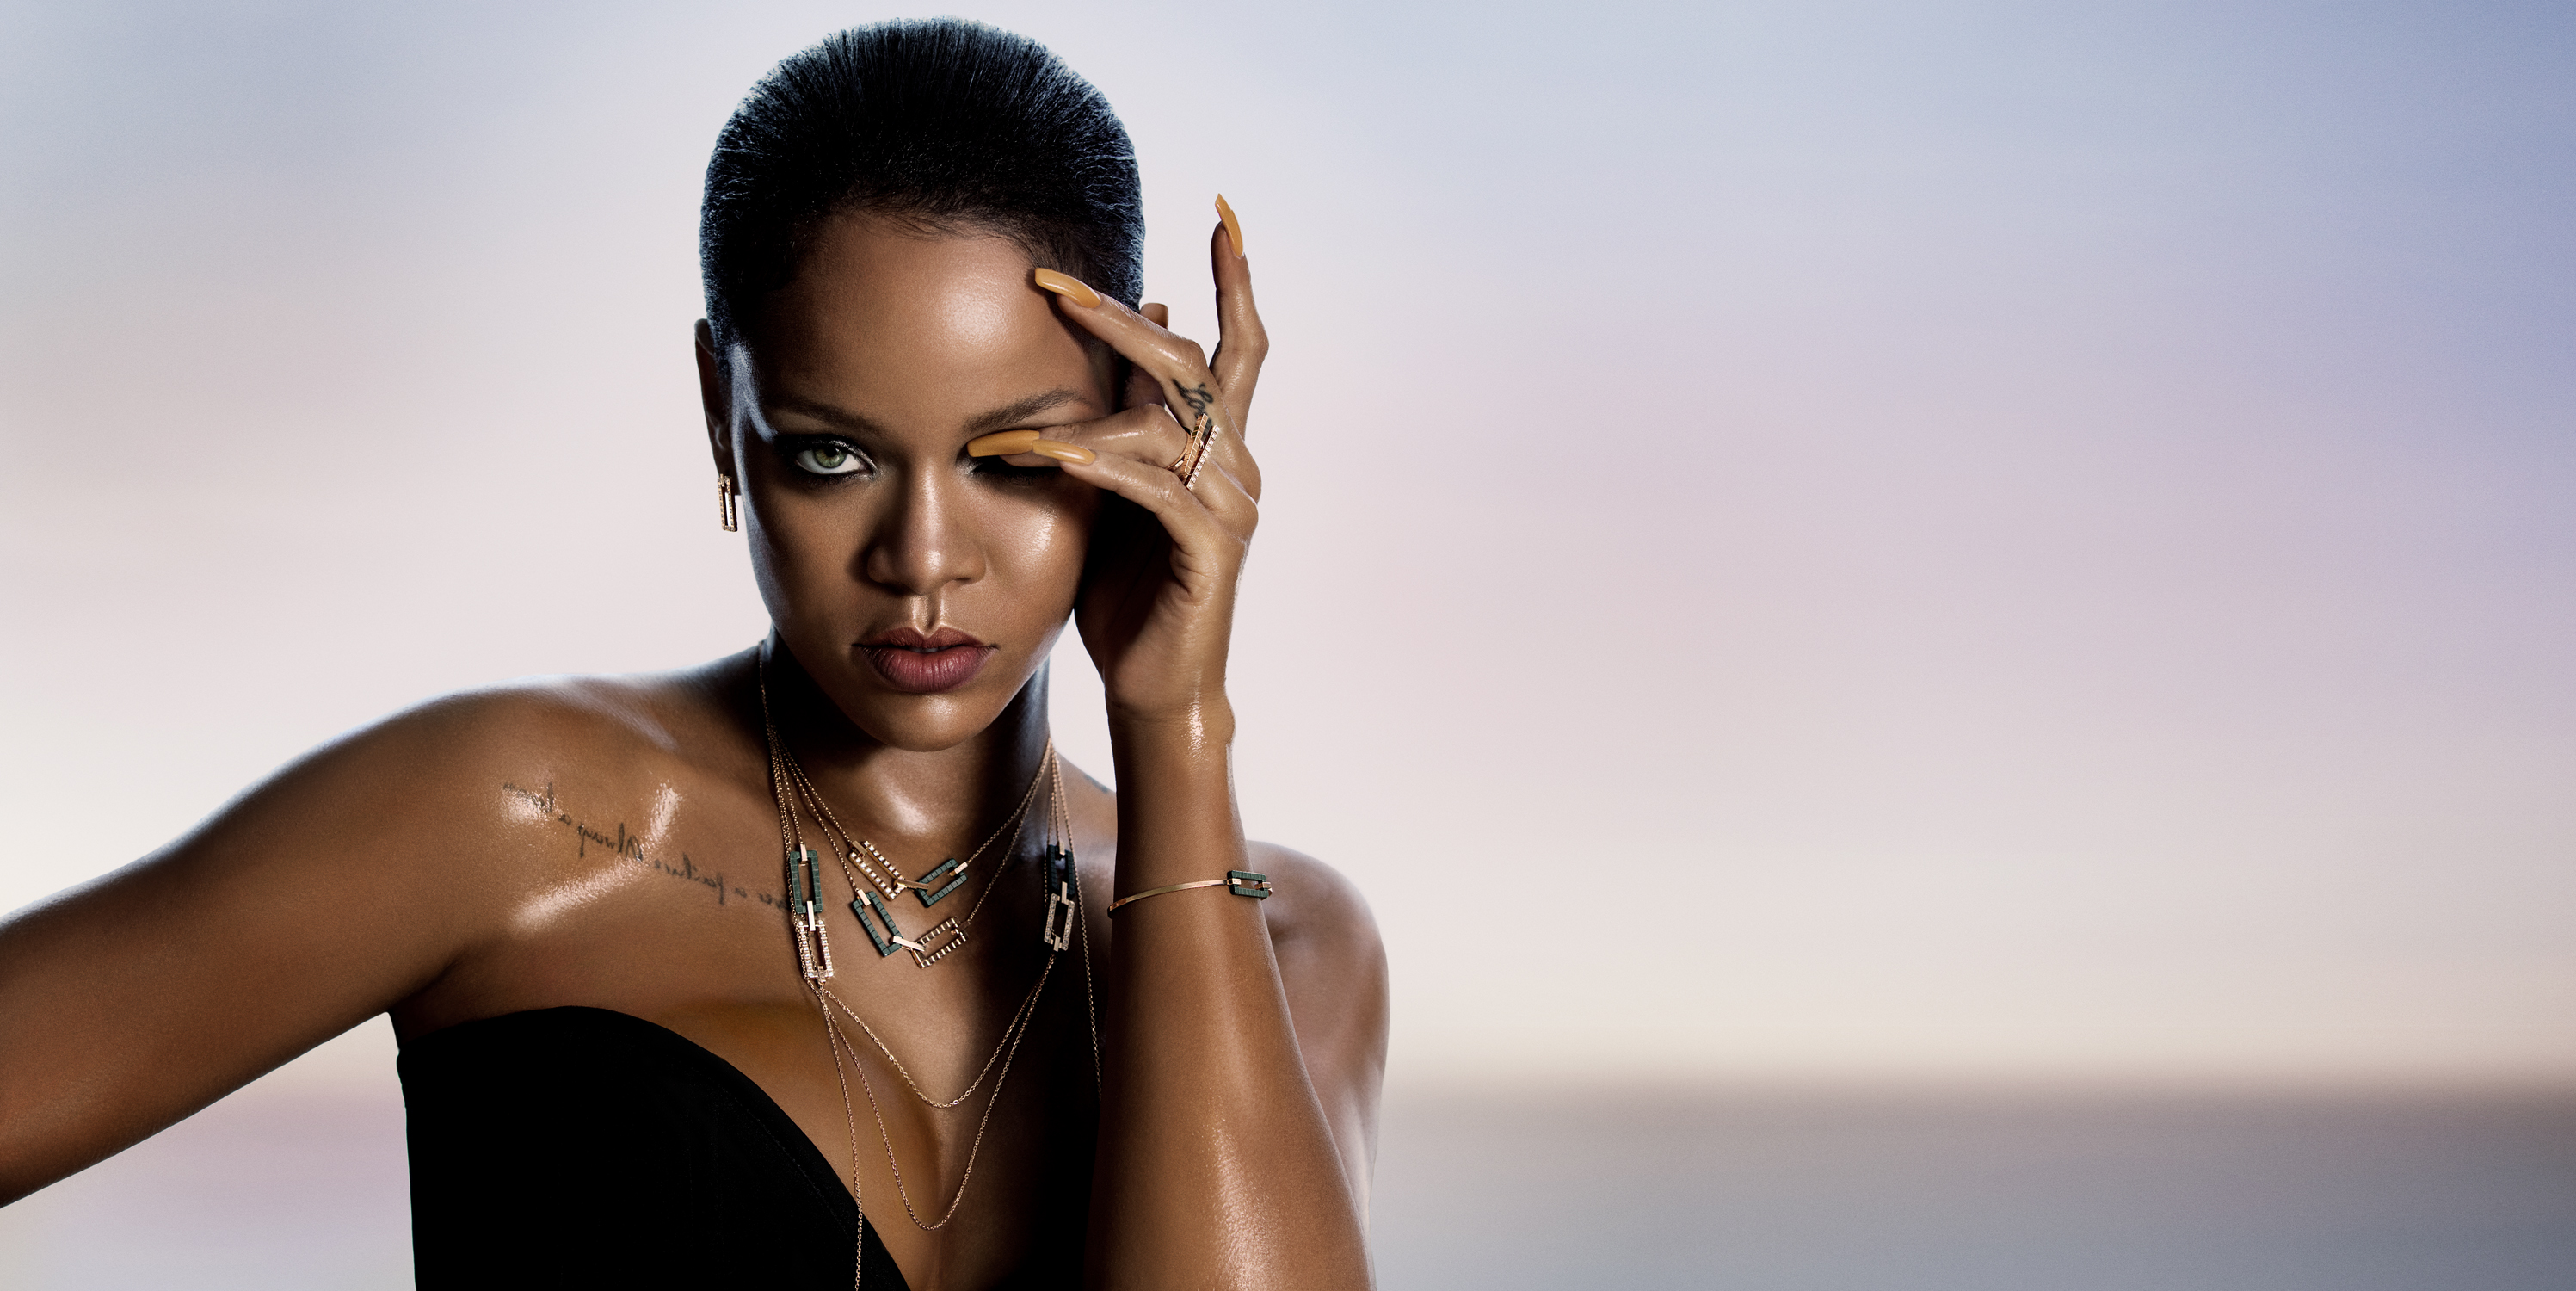 rihanna joaillerie collection 2017, hd music, 4k wallpapers, images